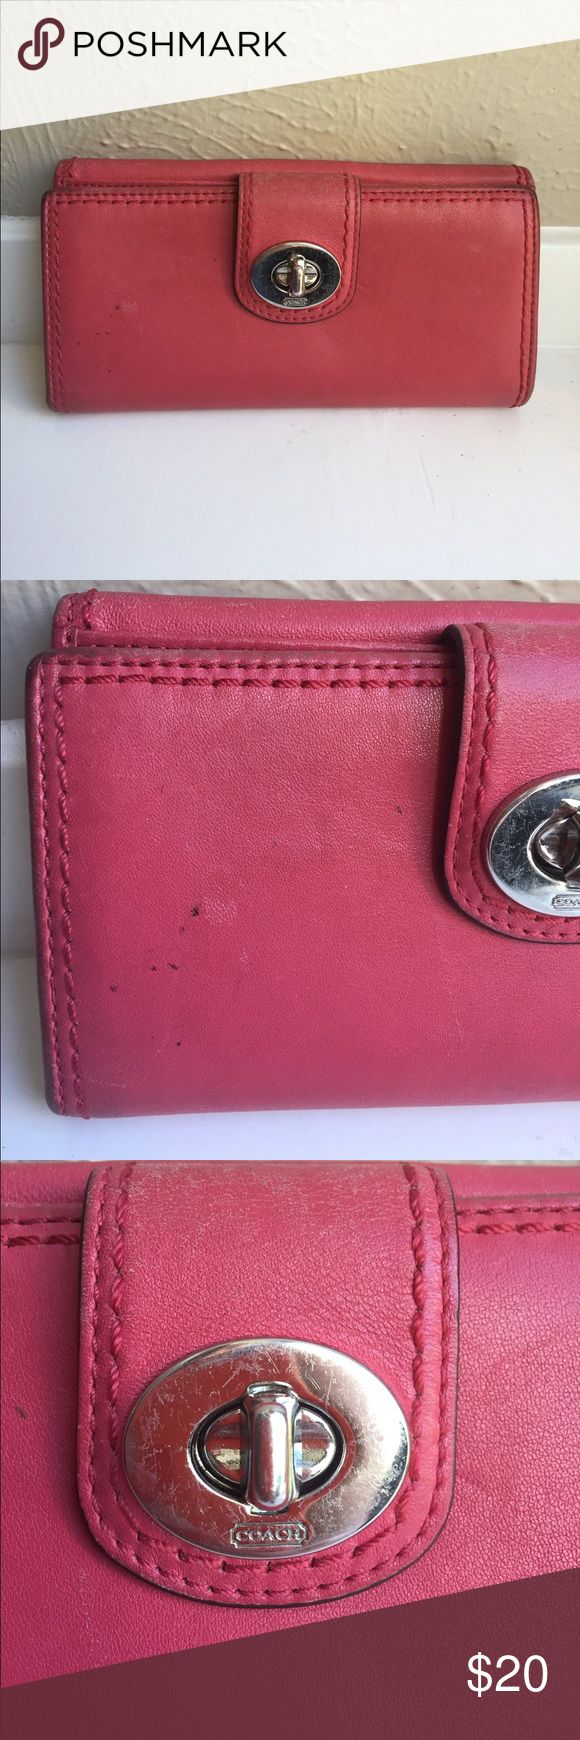 Pinkish red coach Wallet leather credit cards snap Lots of dirt, pen marks, dry areas, and scuffs. Please reference photos. Coach Bags Wallets